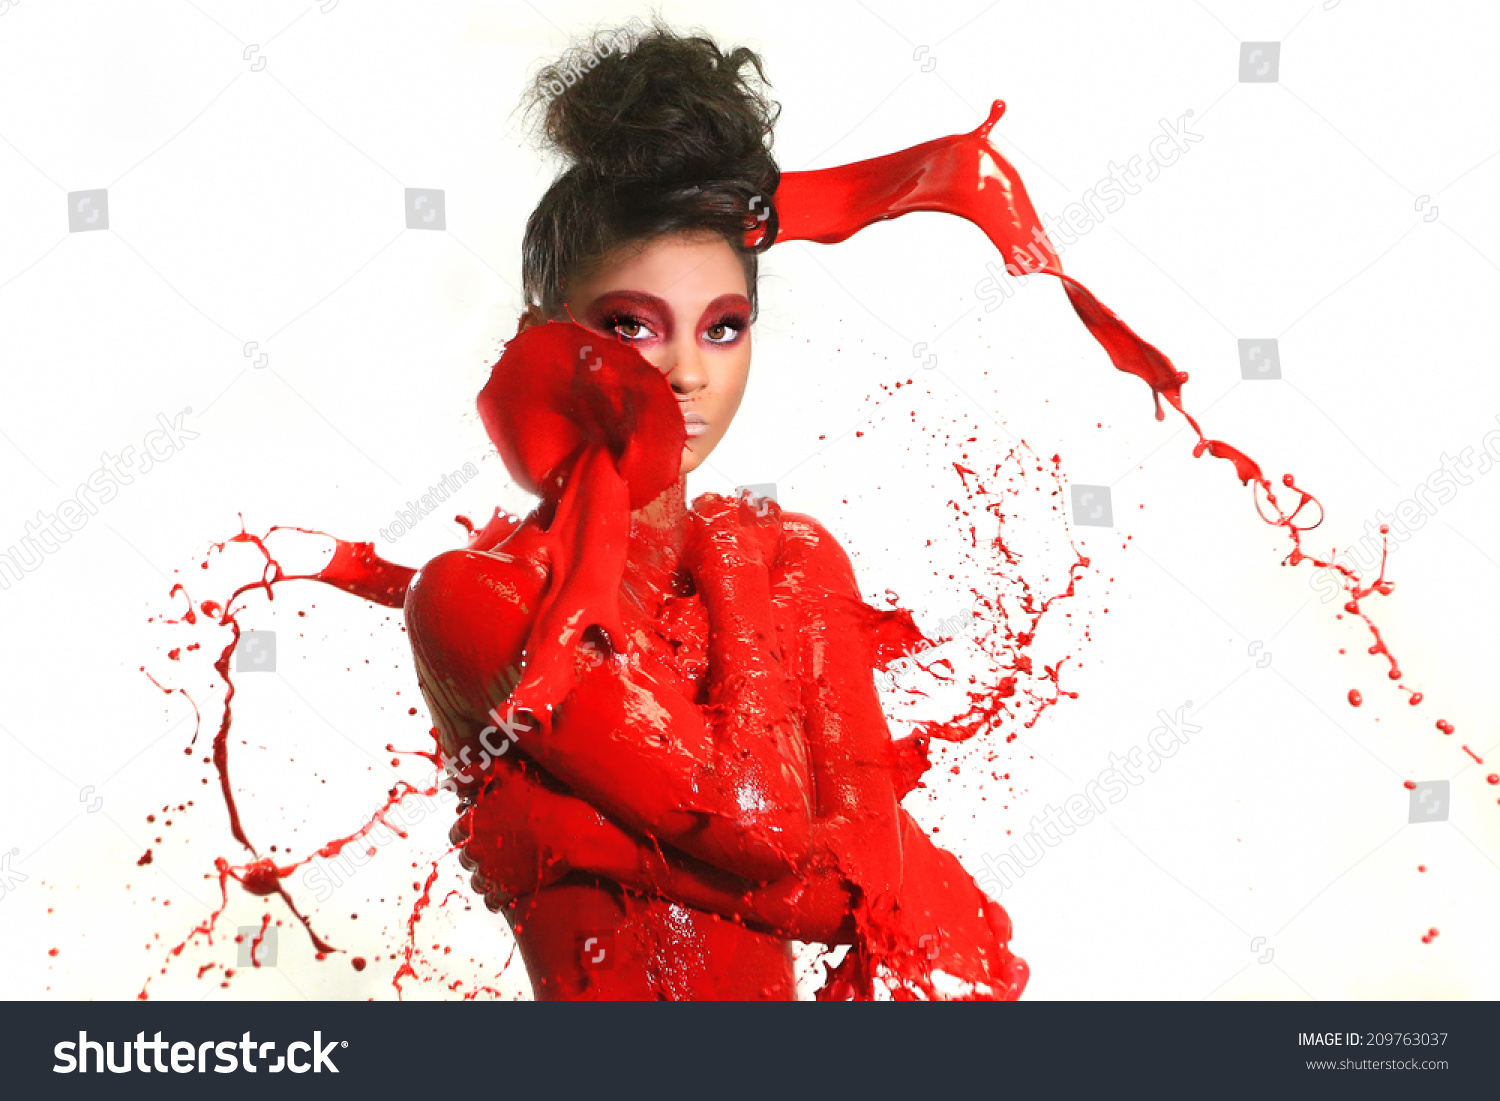 Beautiful Woman Covered in Bright Paint Splatter #209763037